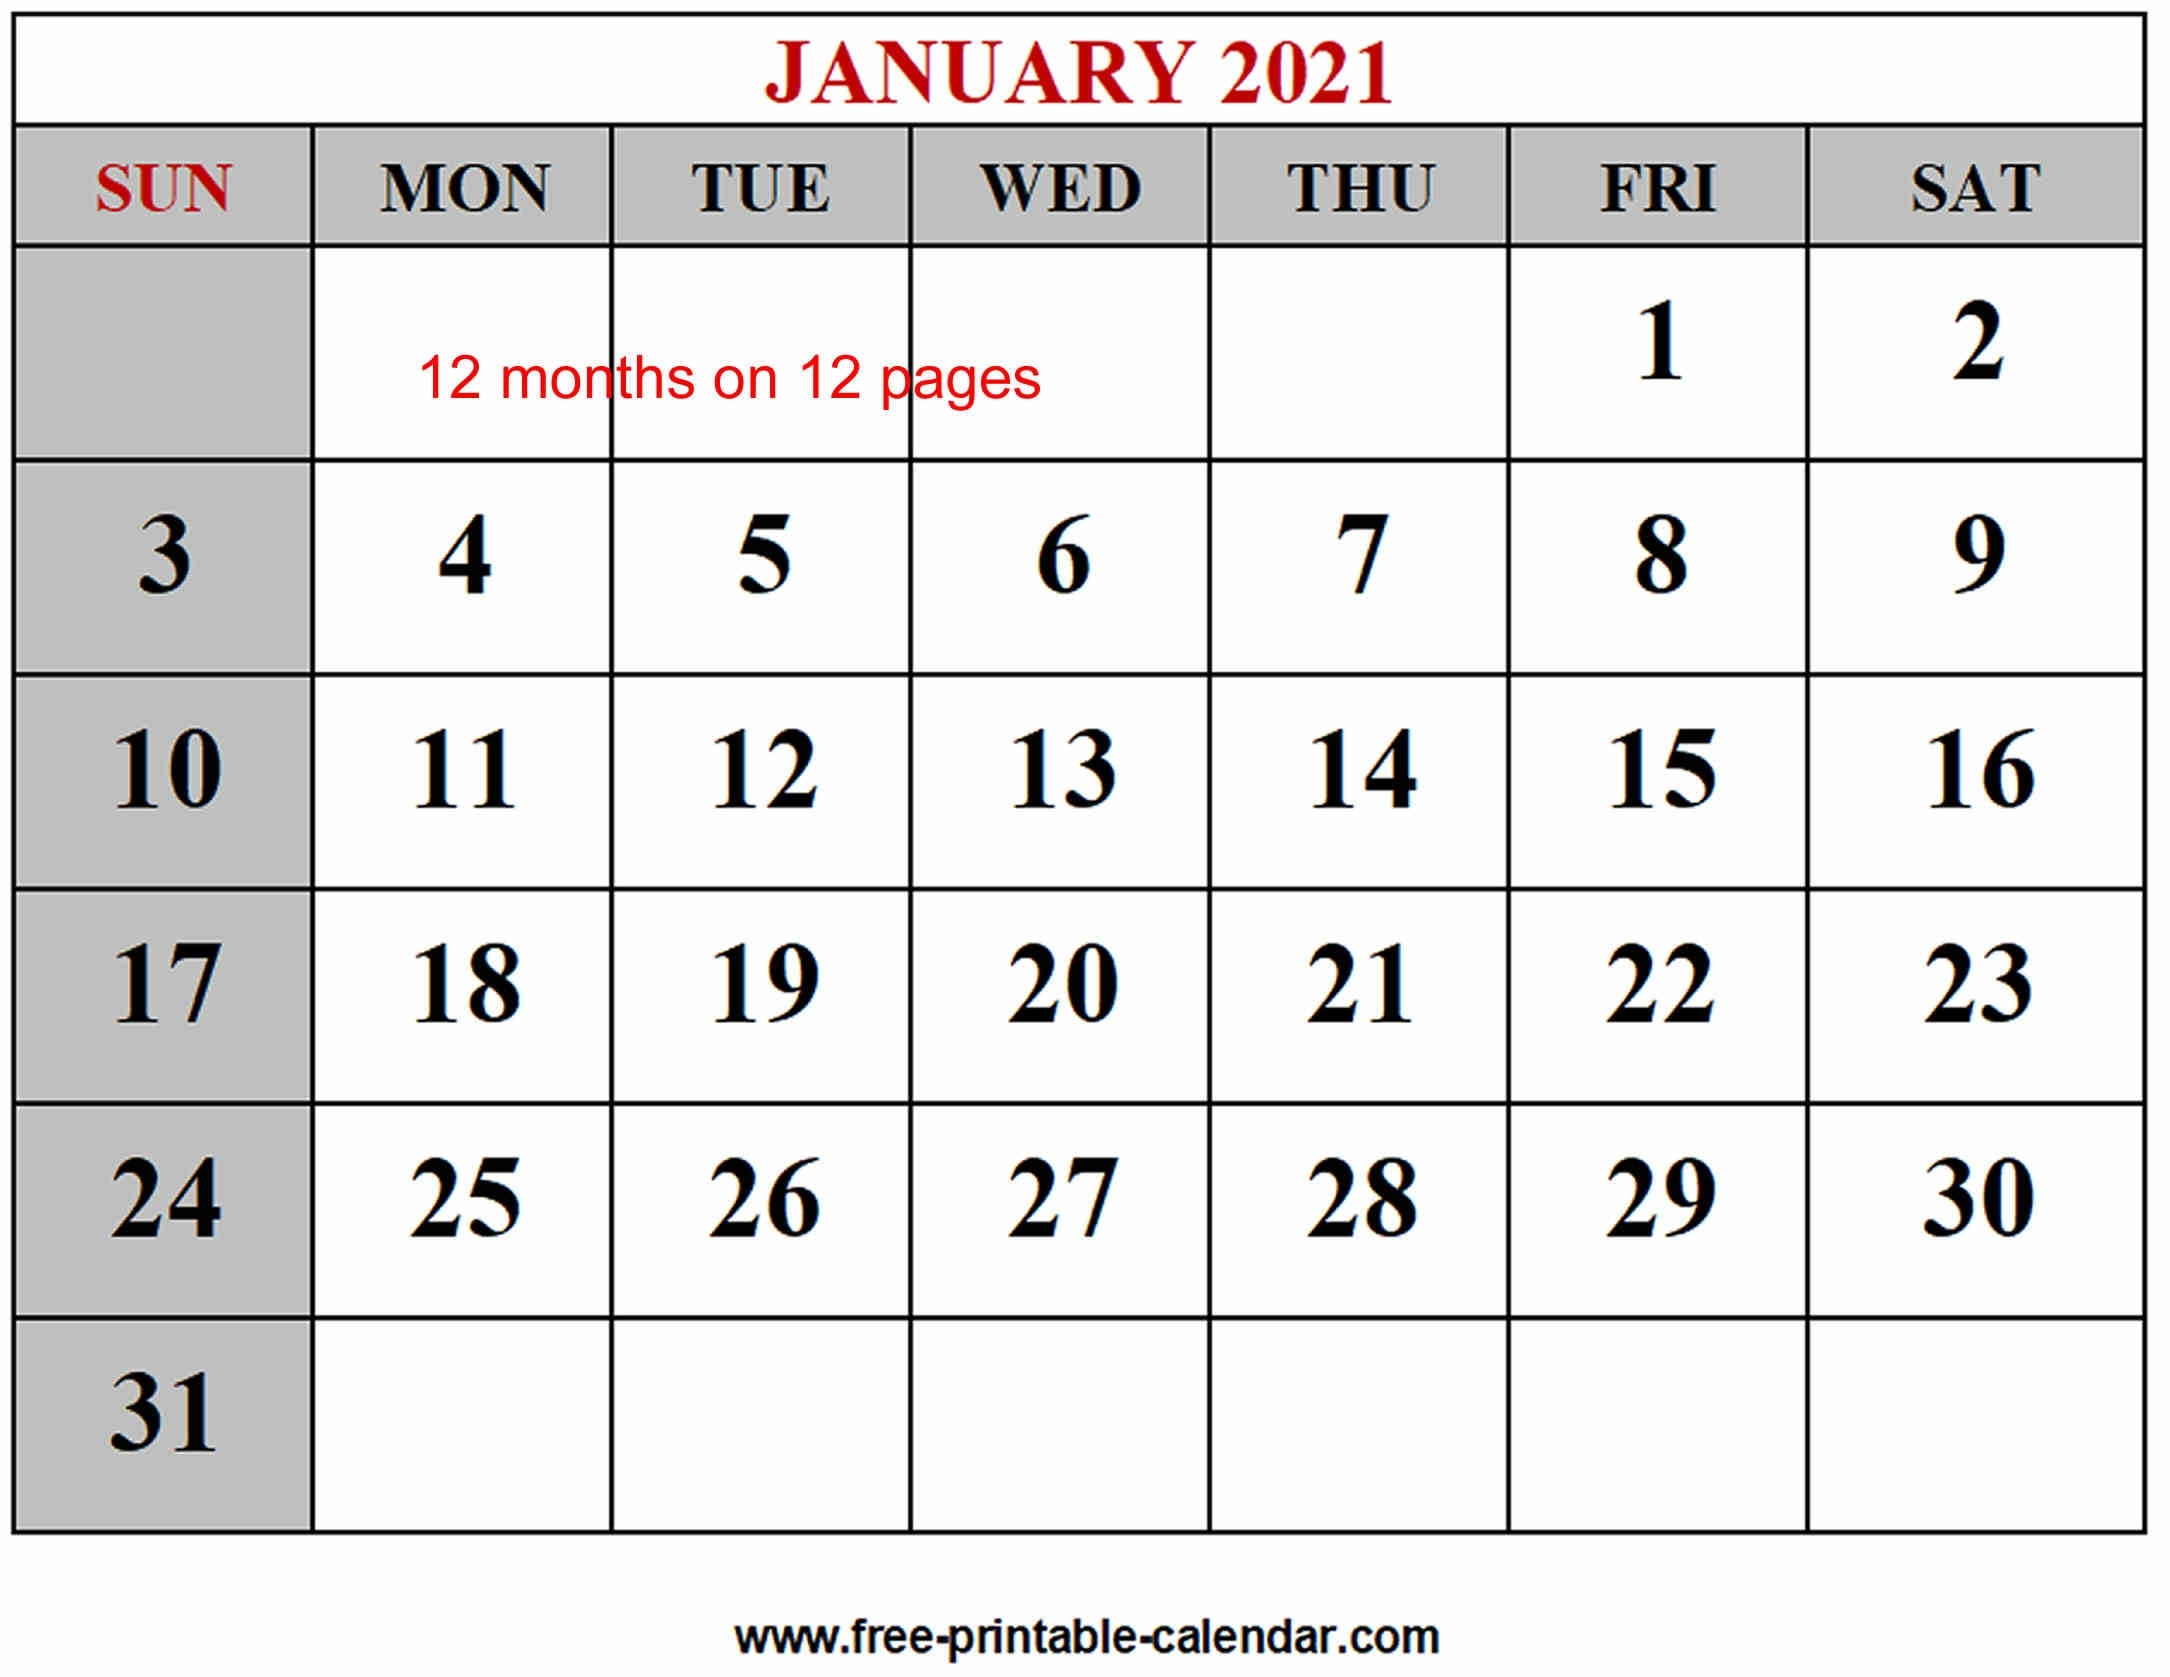 Free 2021 Yearly Calender Template / Free Printable Year